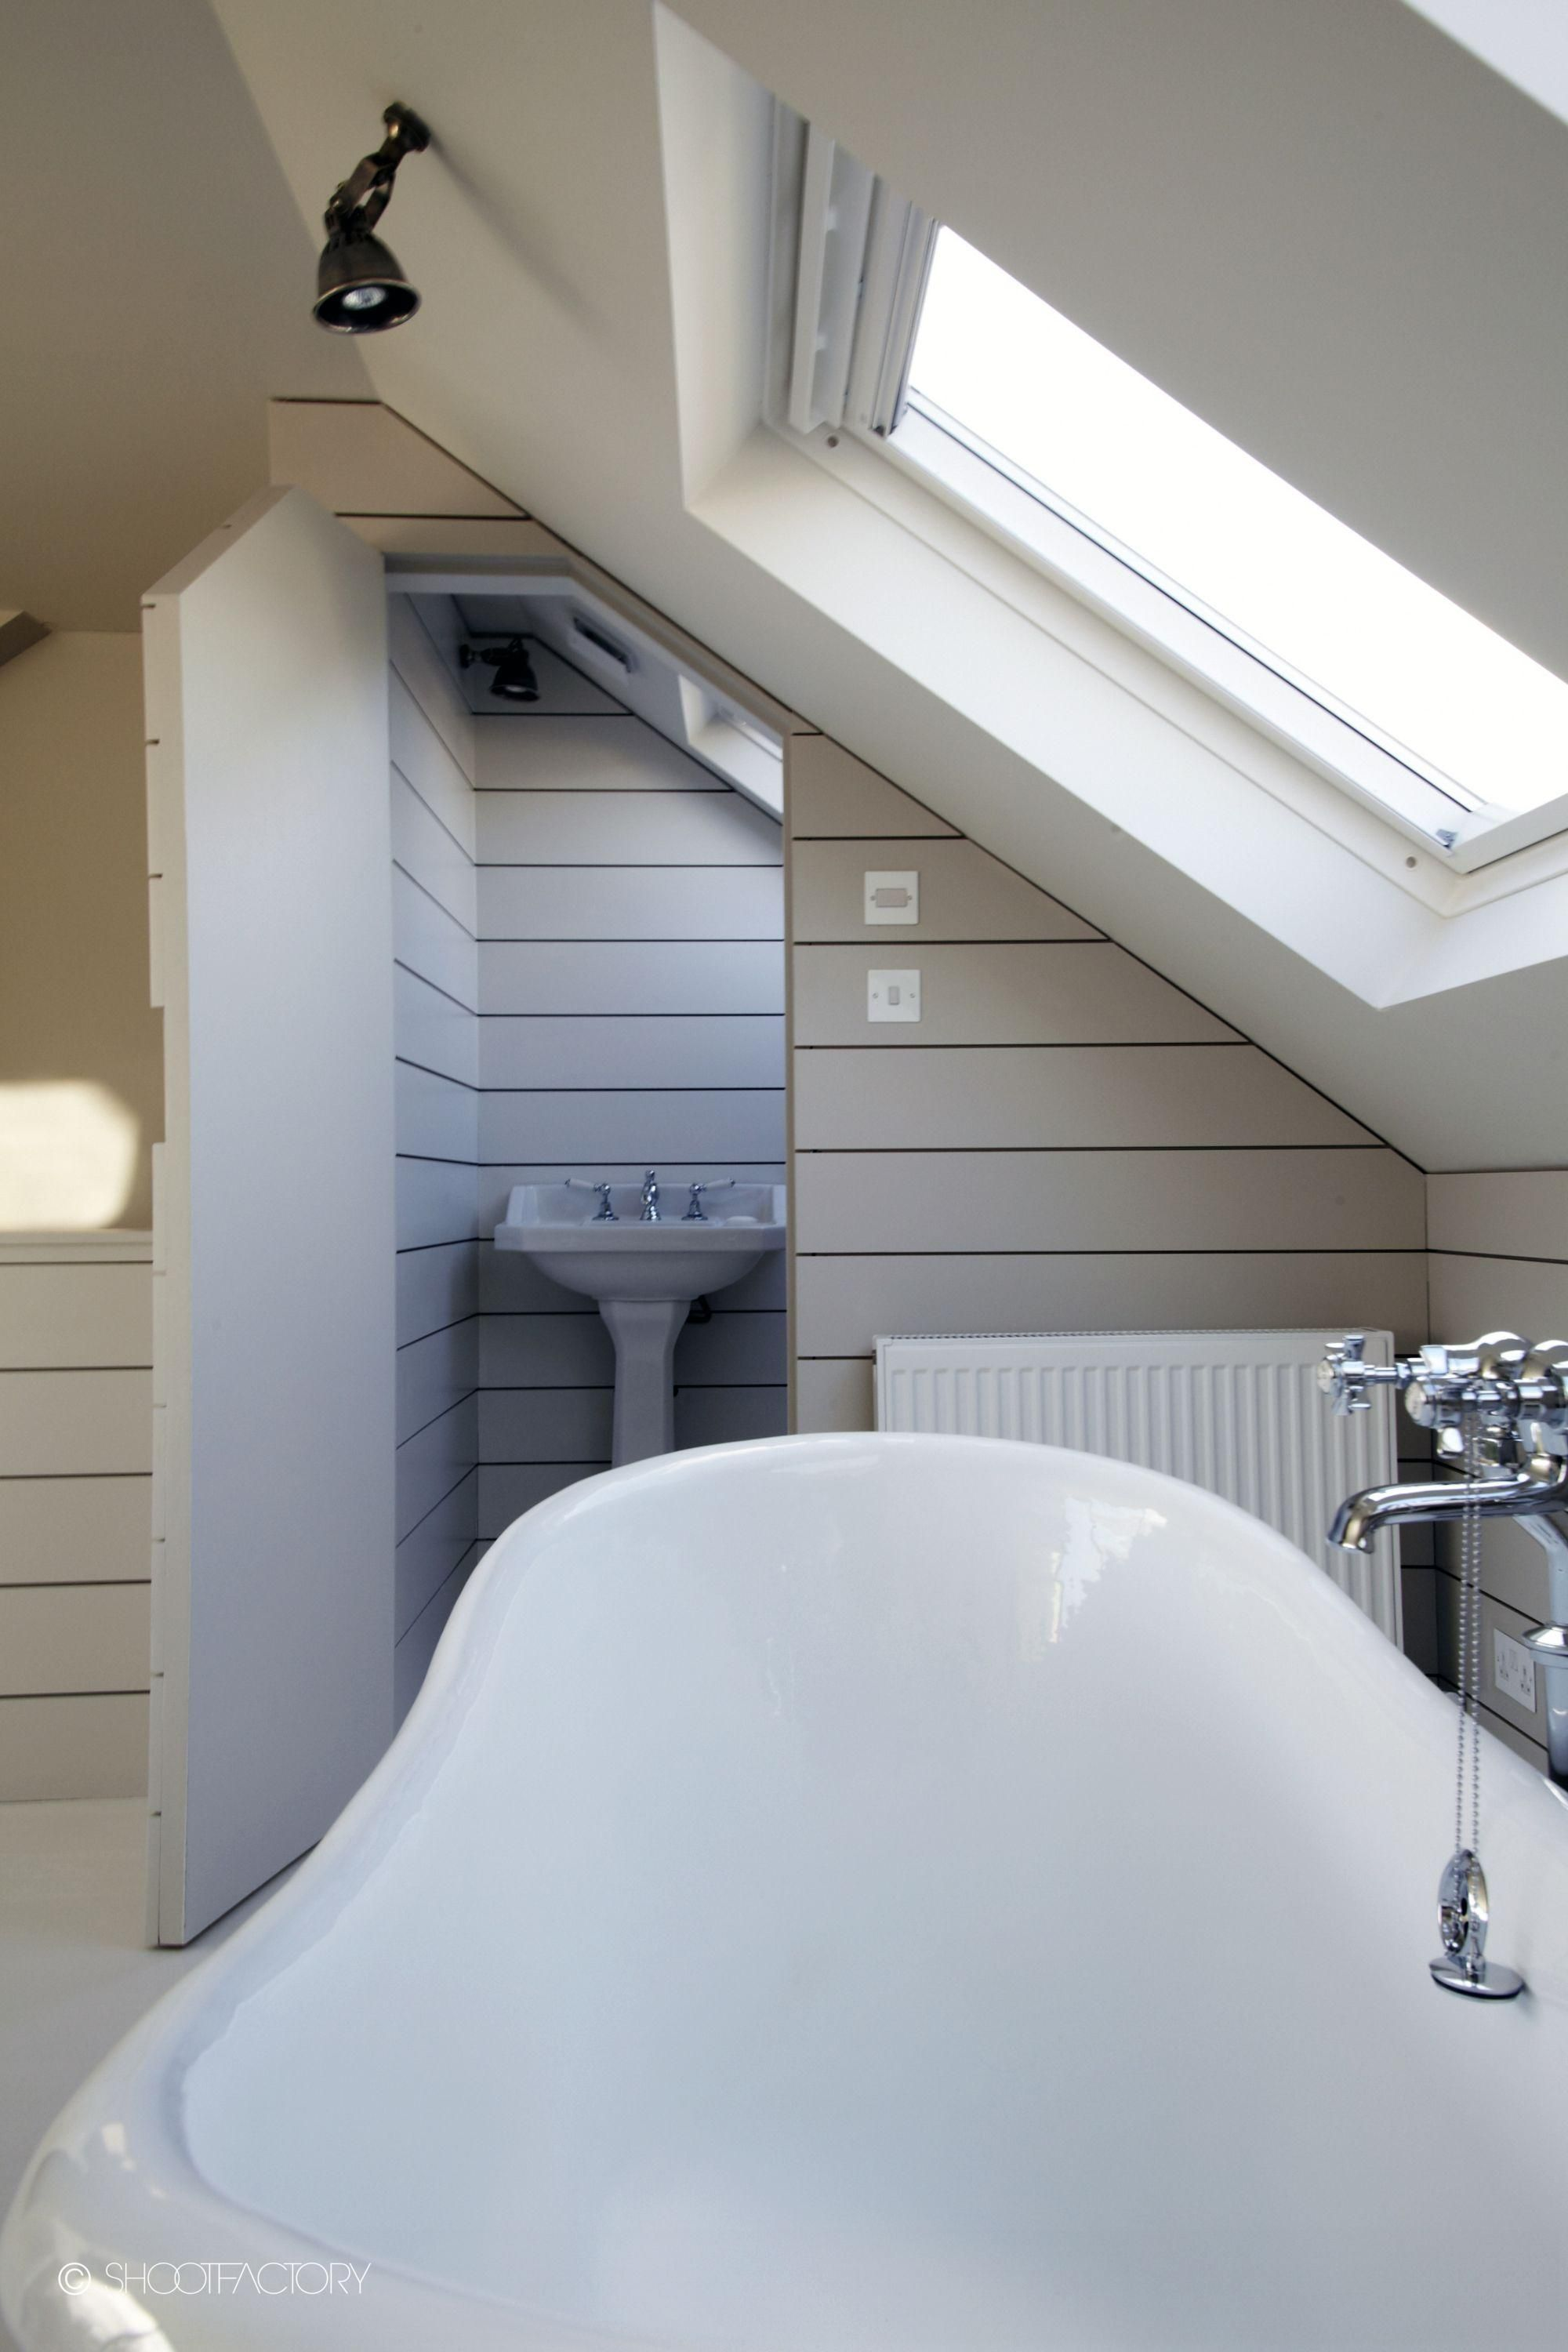 Vcdesign Loves This Sneaky Loo In Eaves Above Stairs